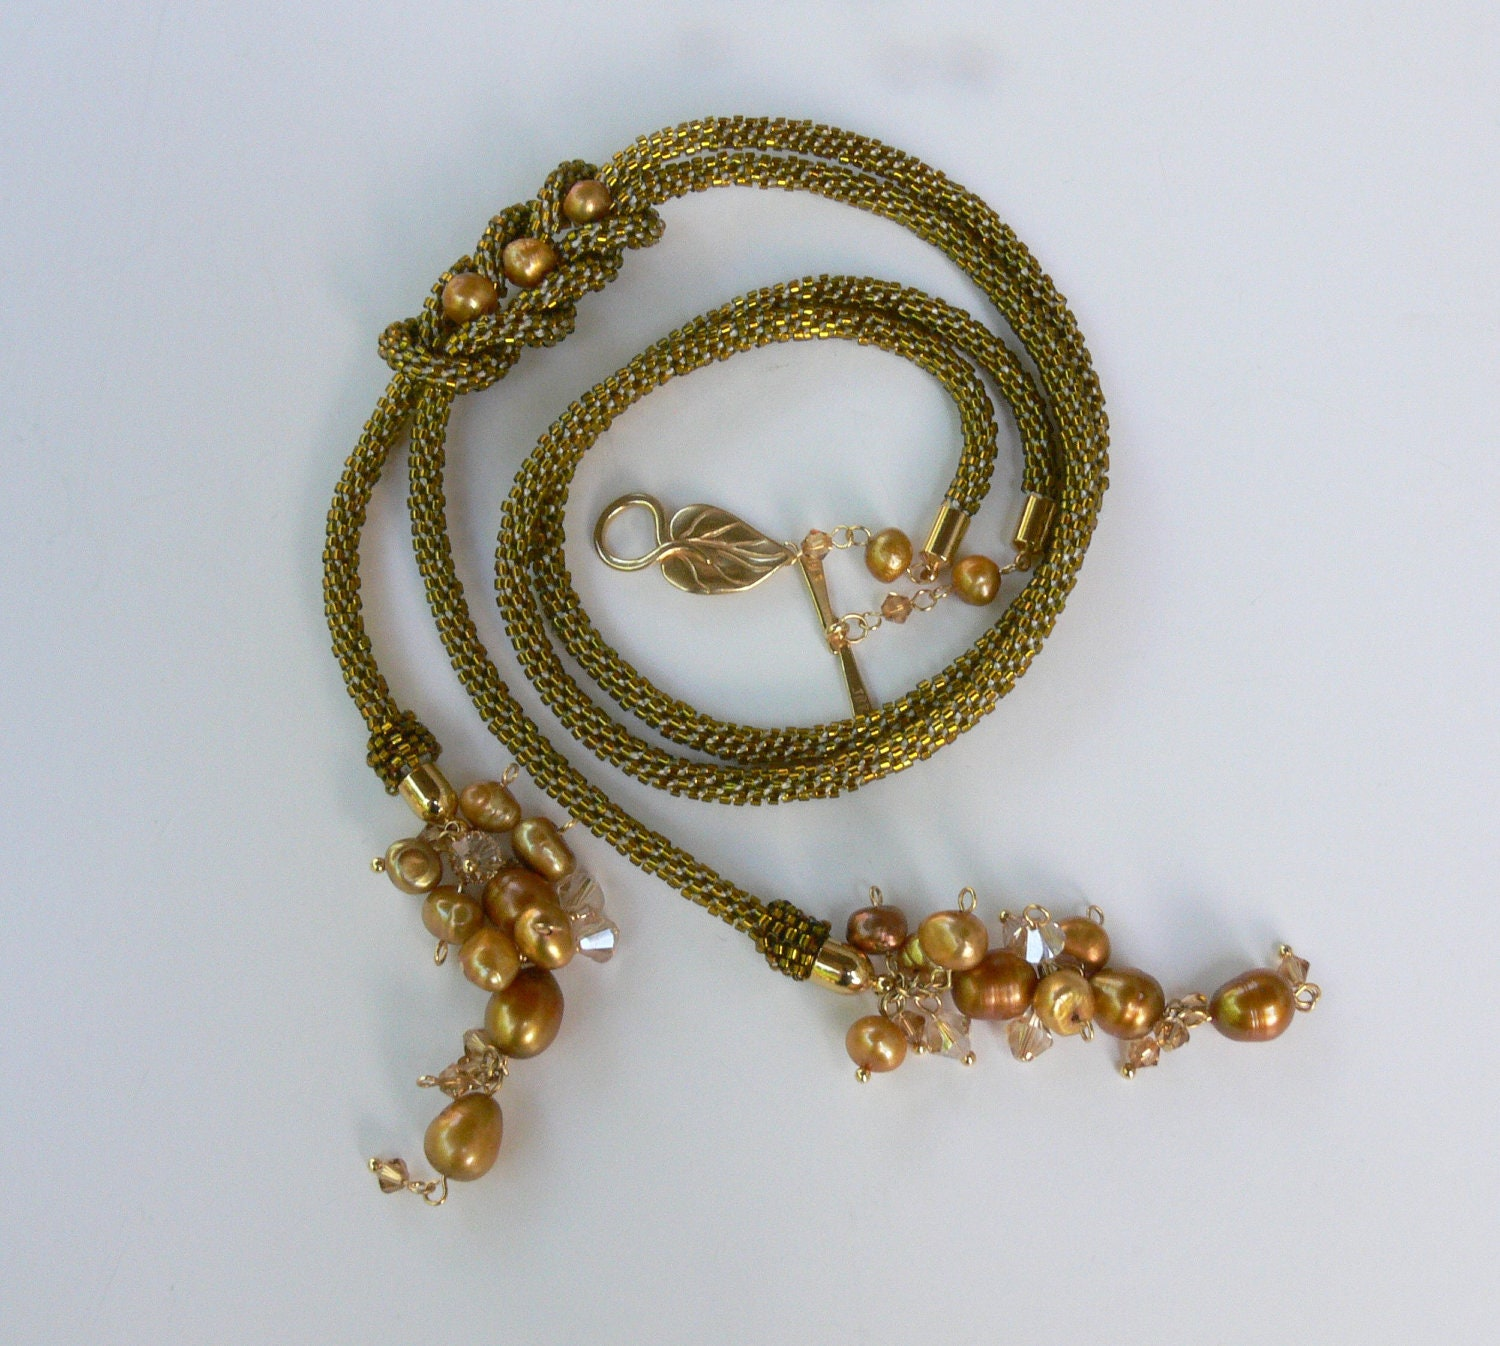 Necklace Beads: Beaded Gold Kumihimo Necklace Seed Beads Jewelry Handmade